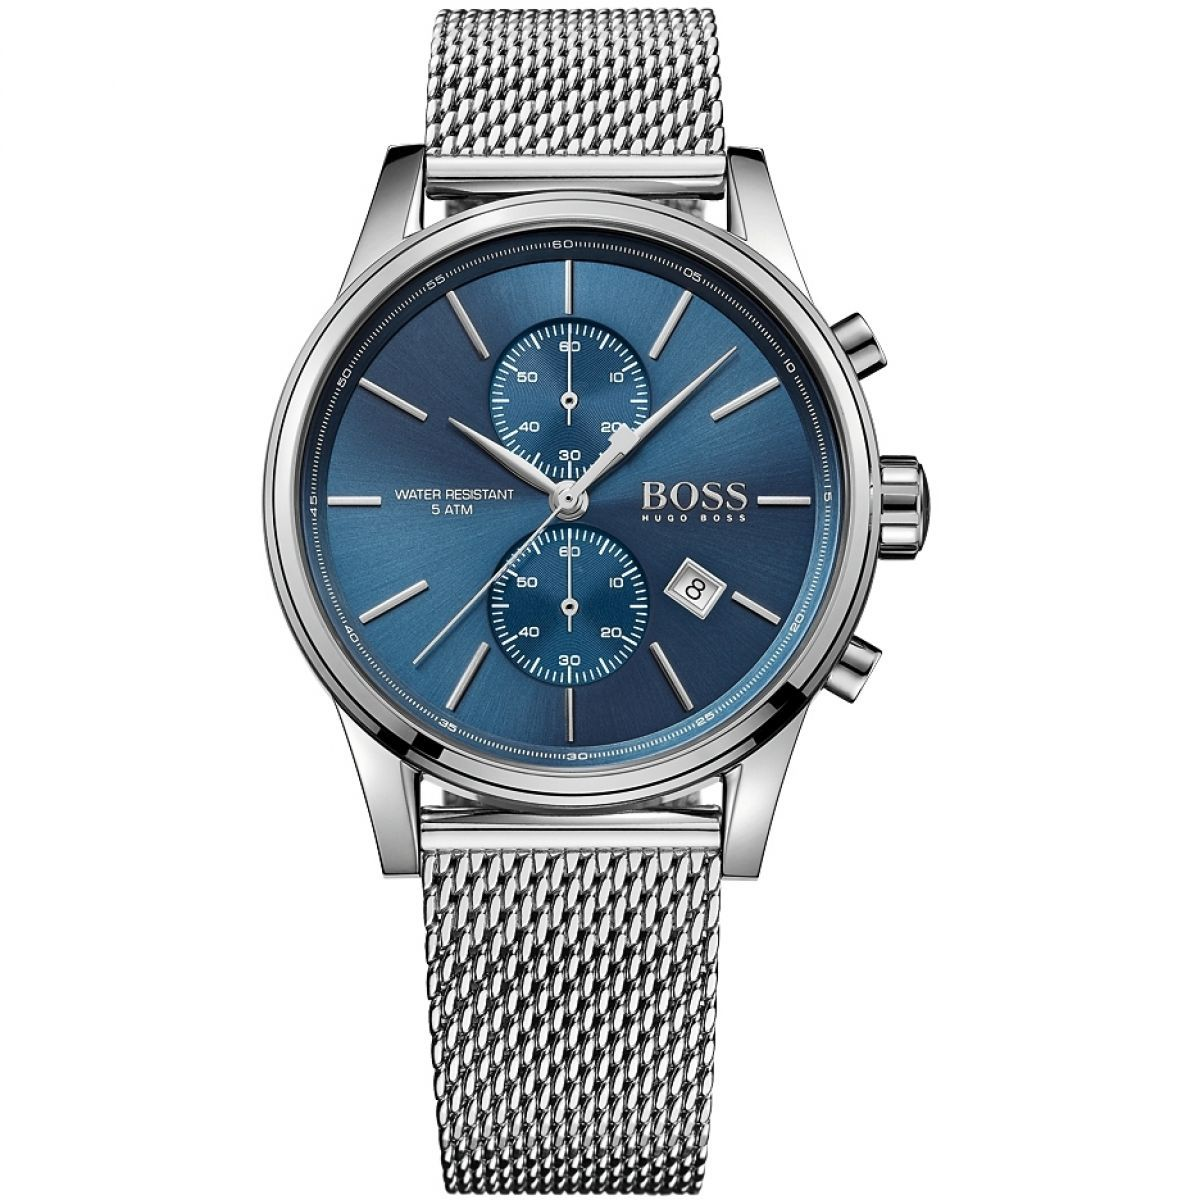 Hugo Boss 1513441 Men's Jet Chronograph Watch